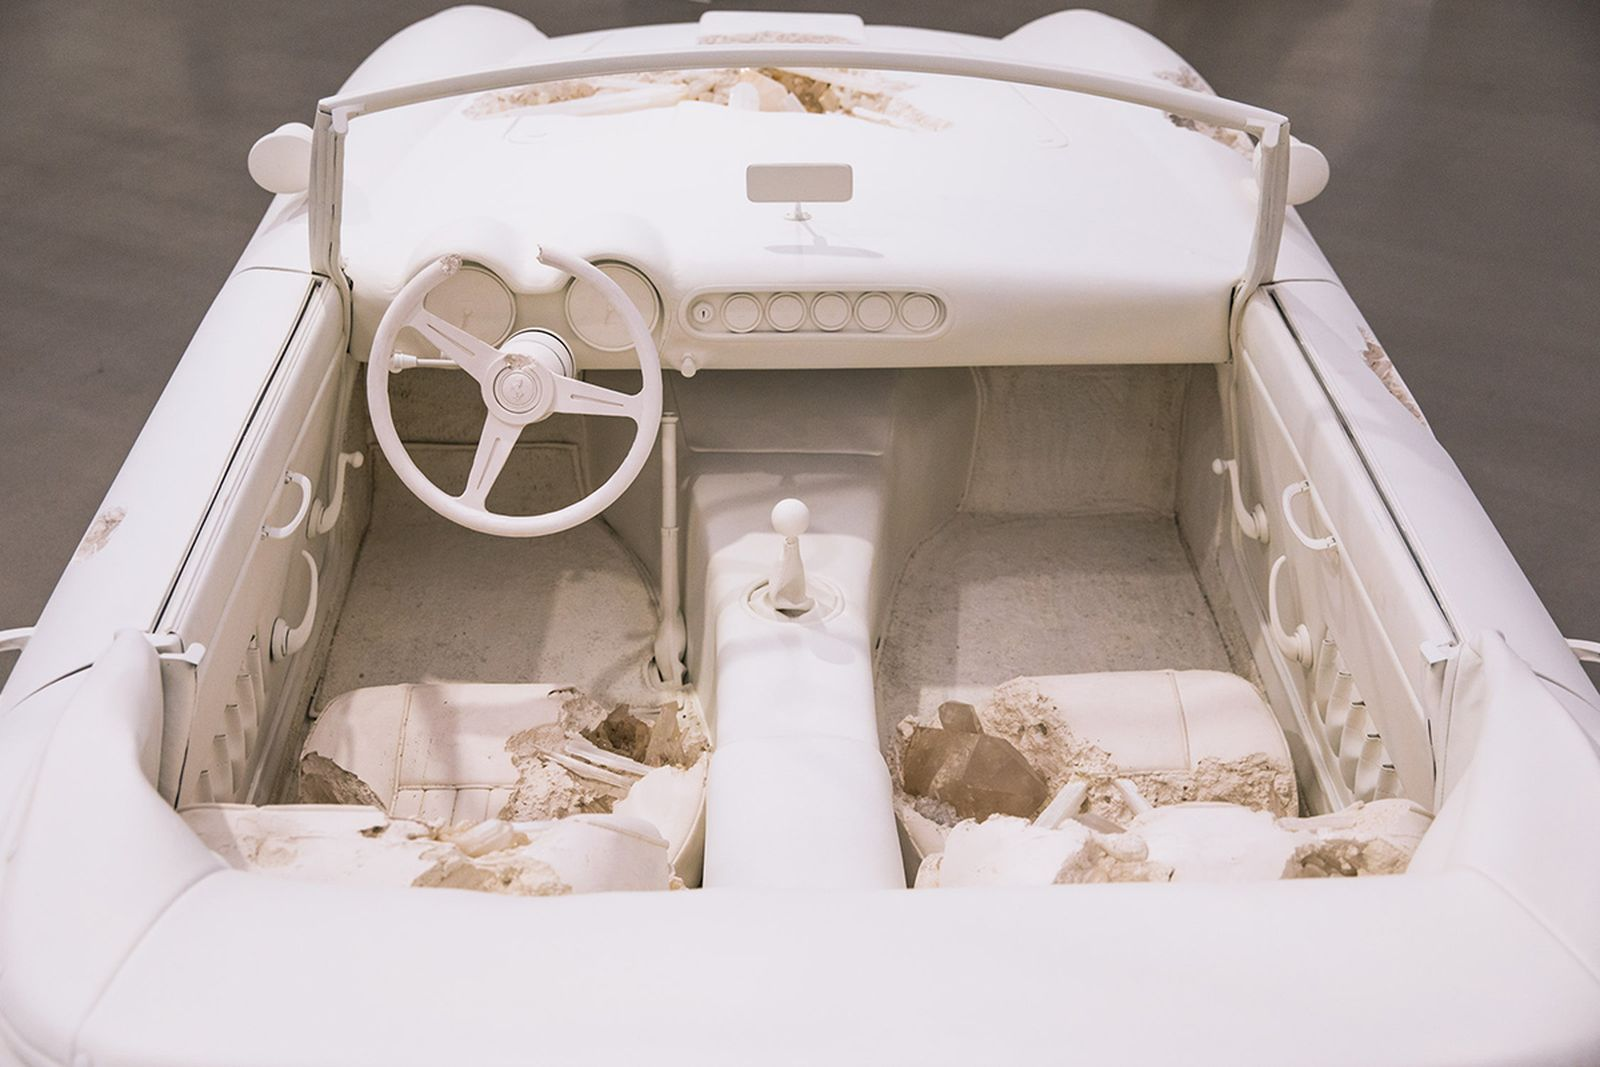 daniel arsham became one of todays most important artists by showing our destroyed future